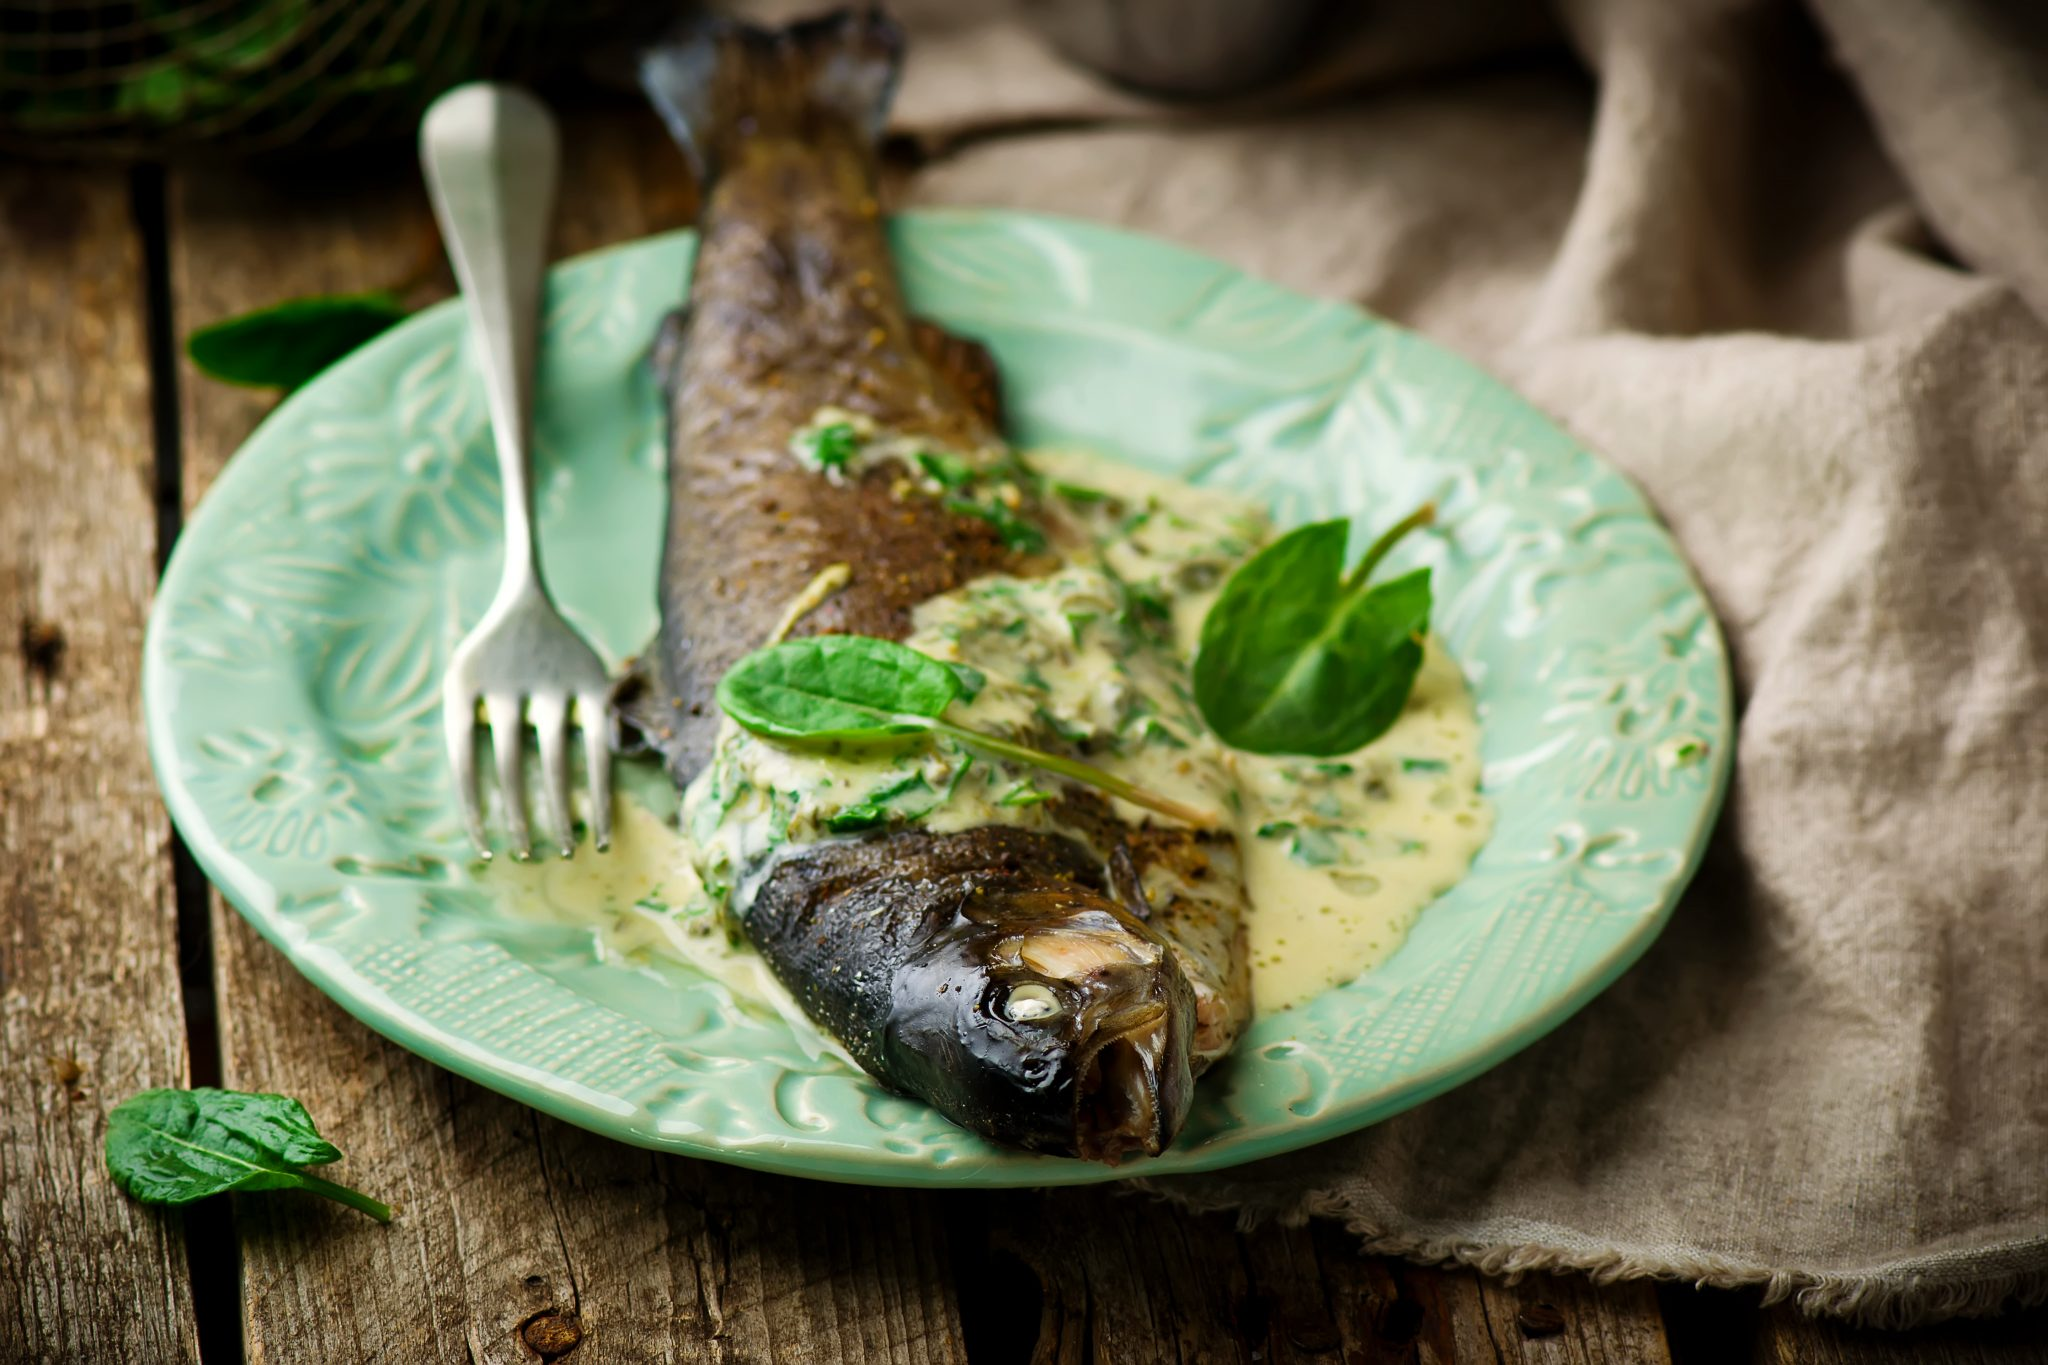 Broiled Rainbow Trout With Lemon Parsley Brown Butter Sauce.